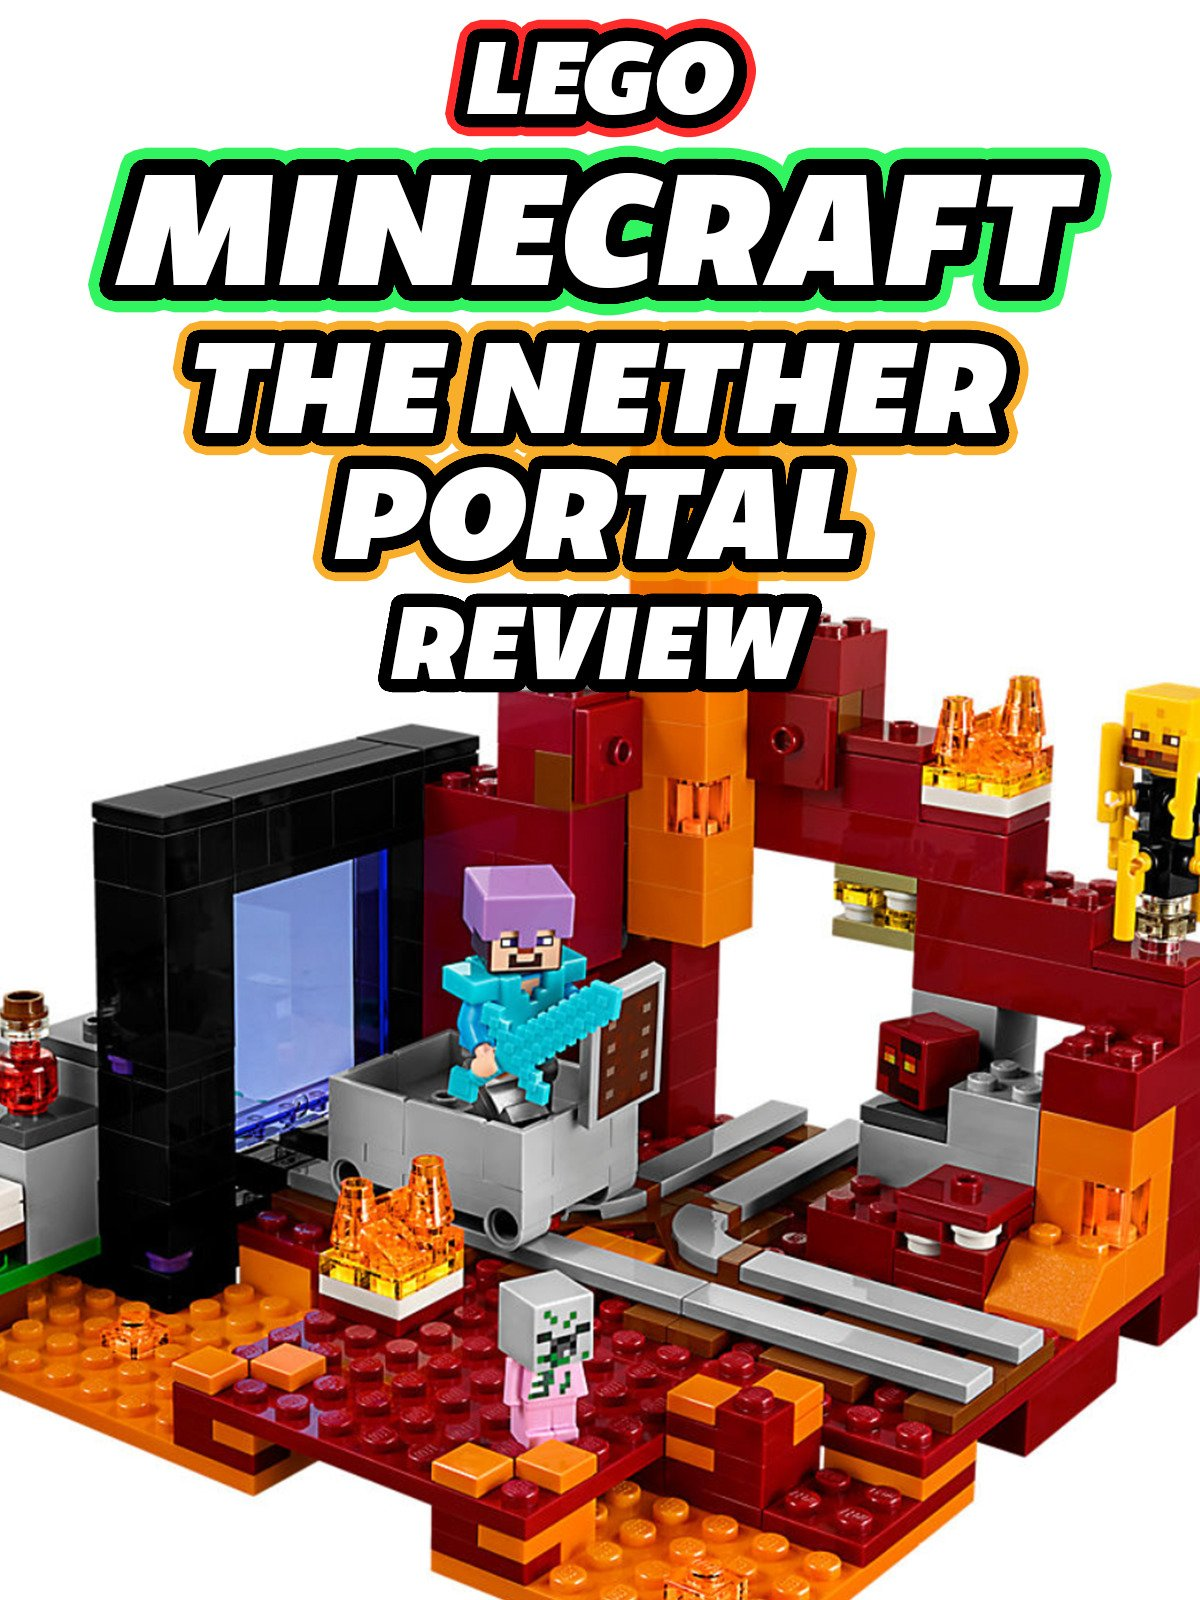 Clip: Lego Minecraft The Nether Portal Review